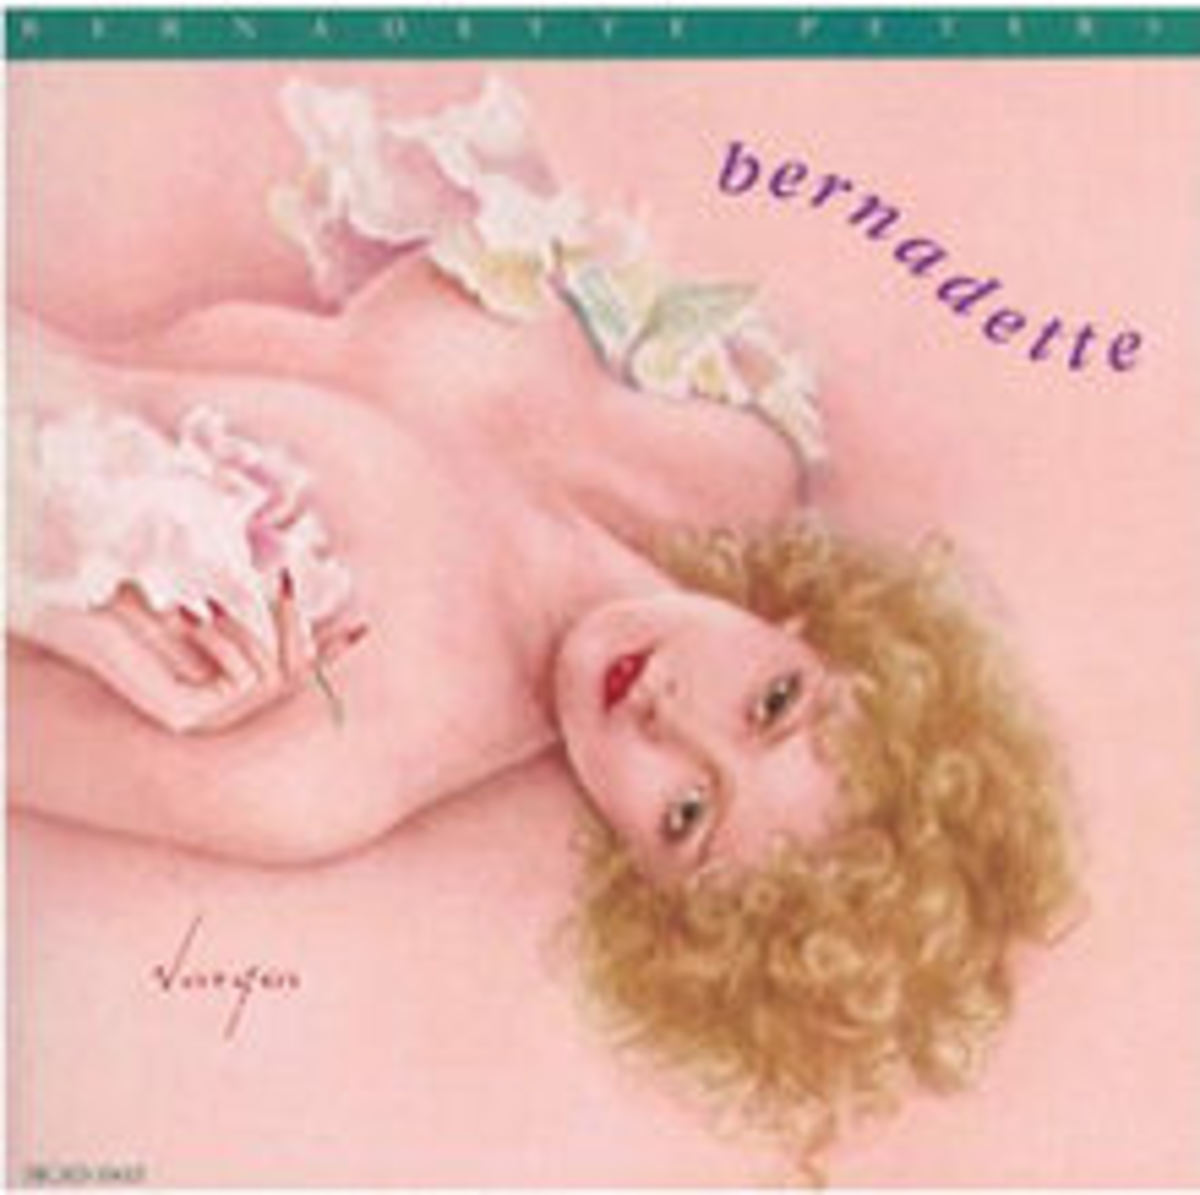 Image credit: musicstack.com One of several images Vargas did when he came out of retirement after his wife died: a record cover for Bernadette Peters.